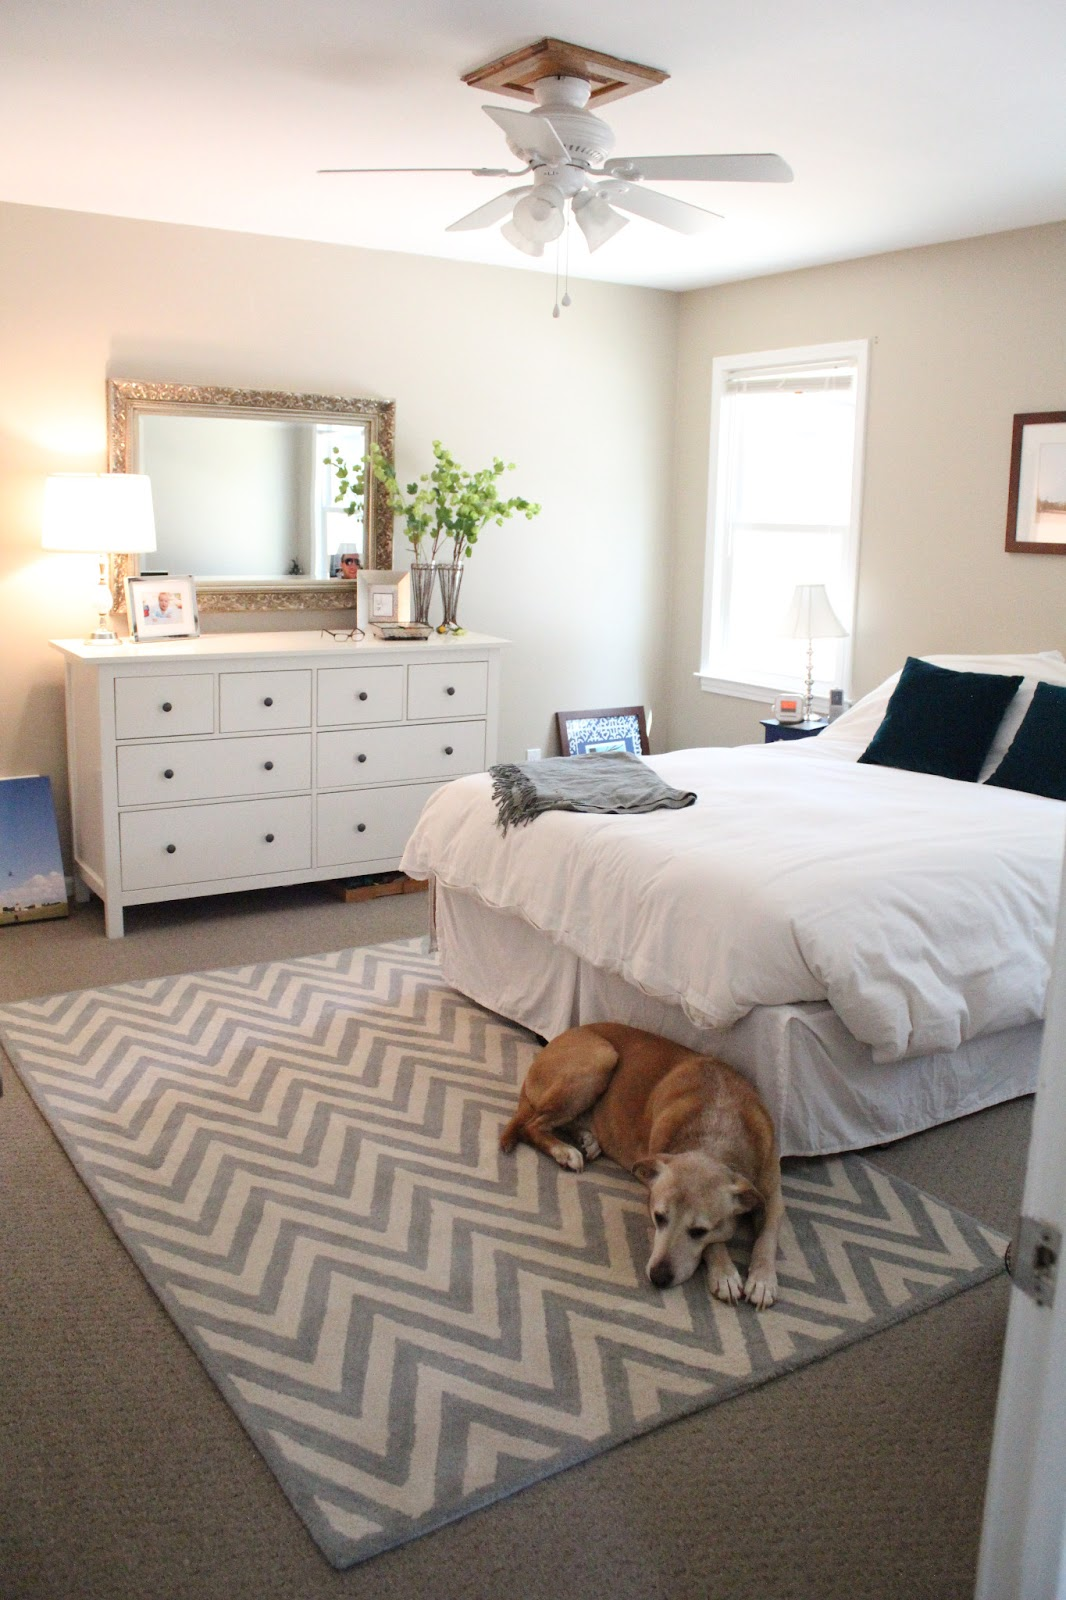 Ten june our rental house a master bedroom tour for Simple and sober bedroom designs